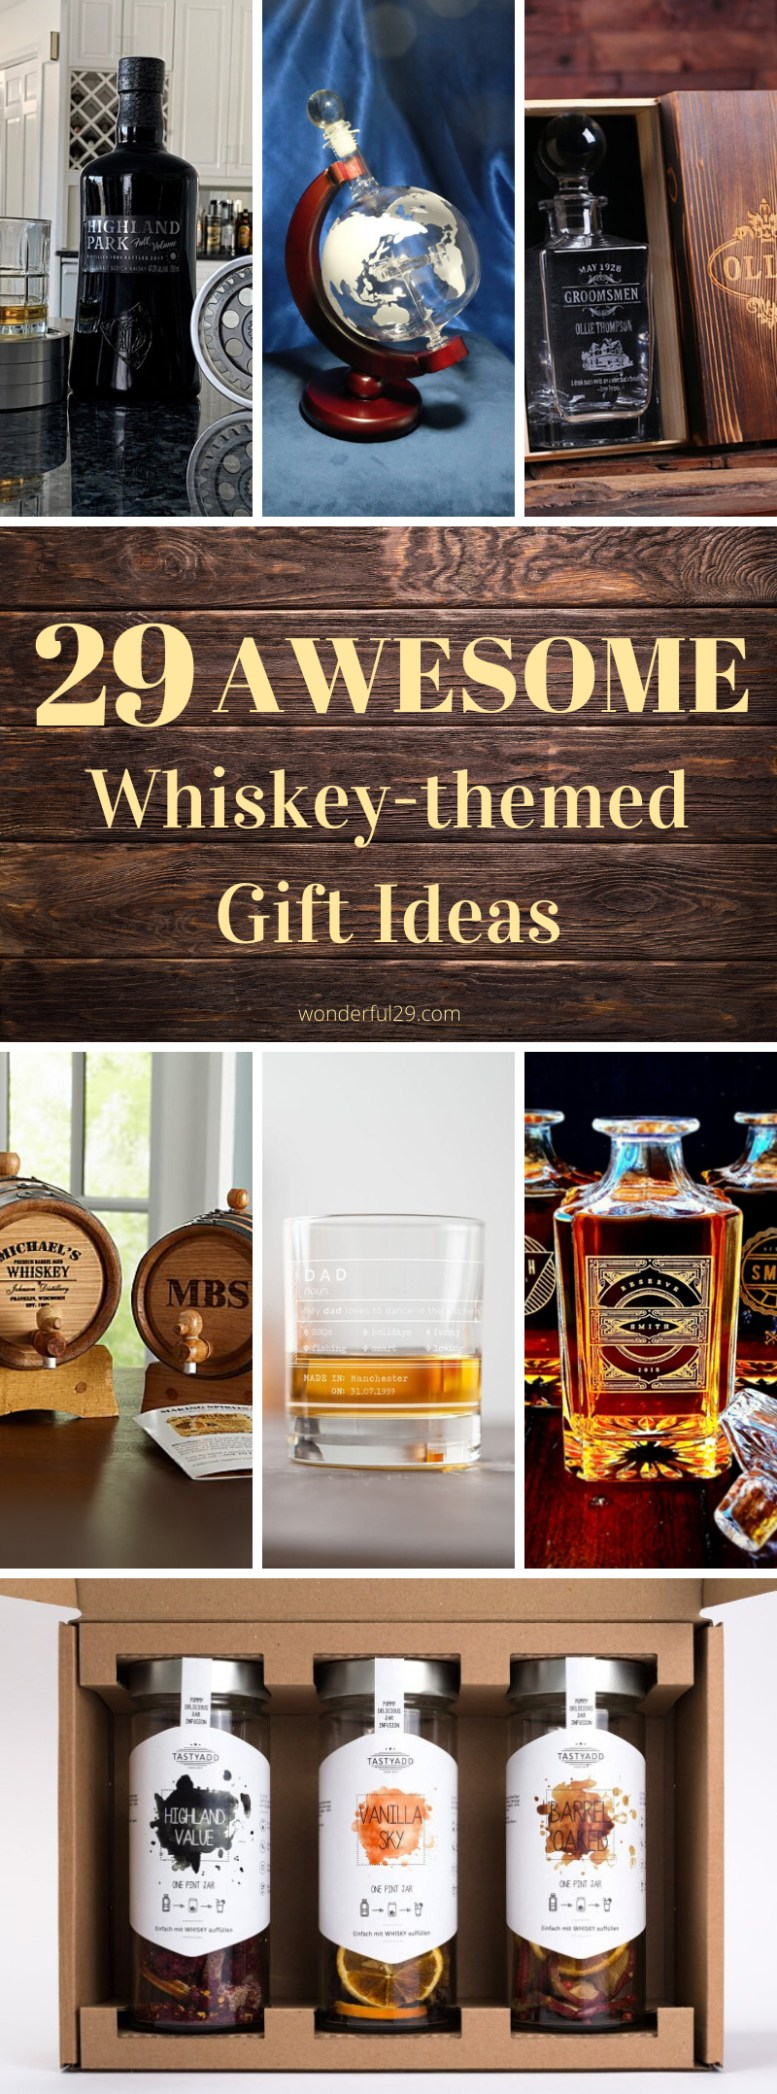 Best Gifts for Whiskey Lovers